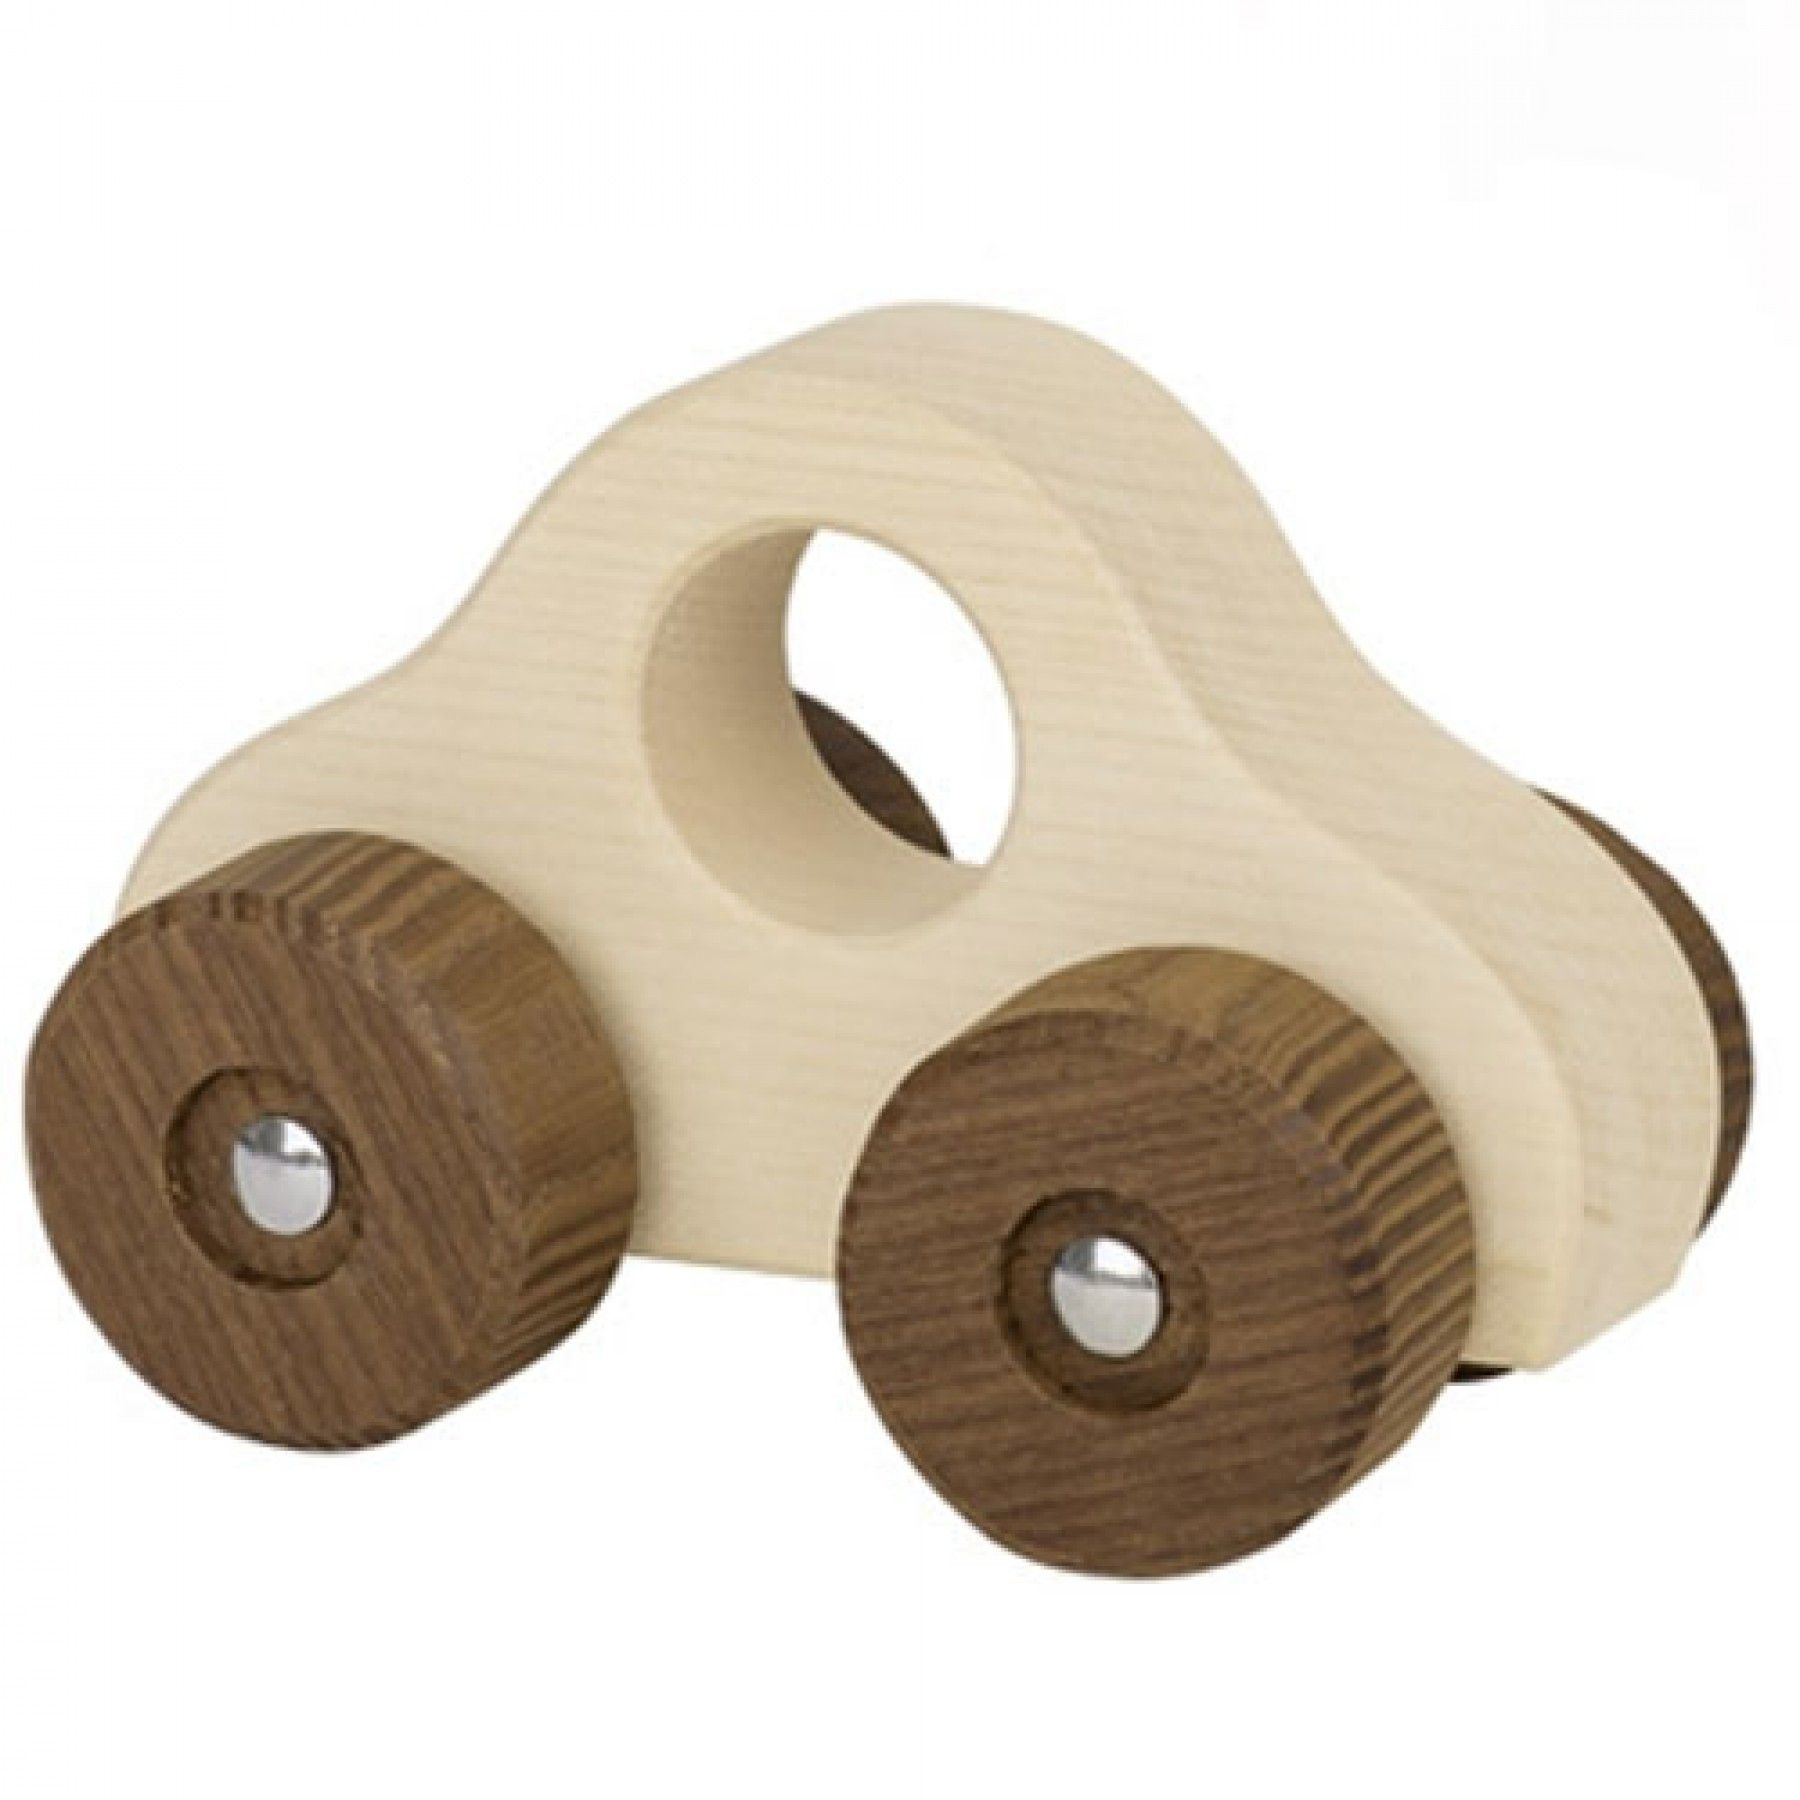 Wooden toy car-1